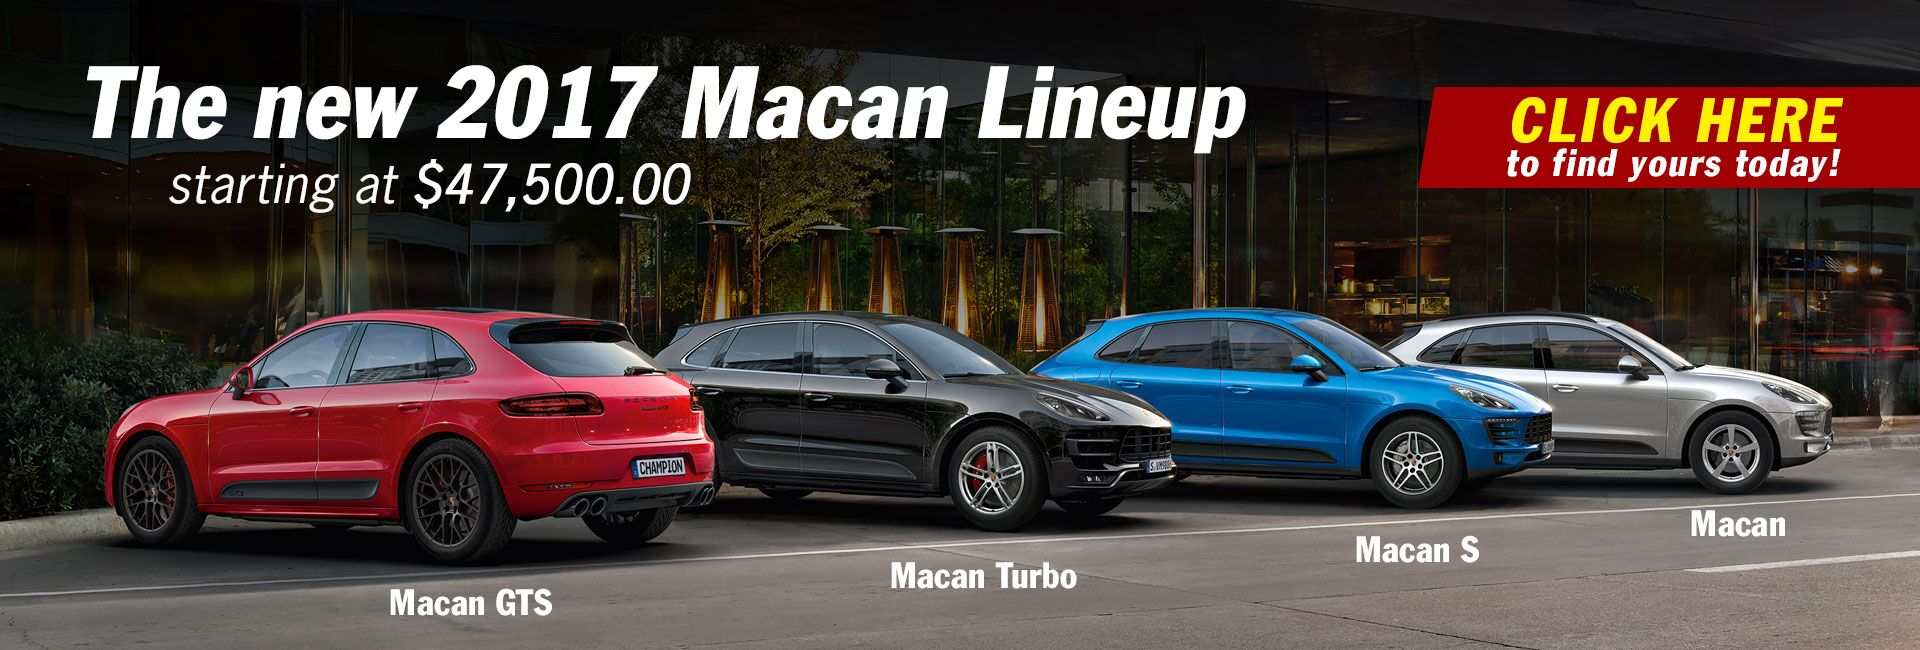 The New 2017 Macan Lineup